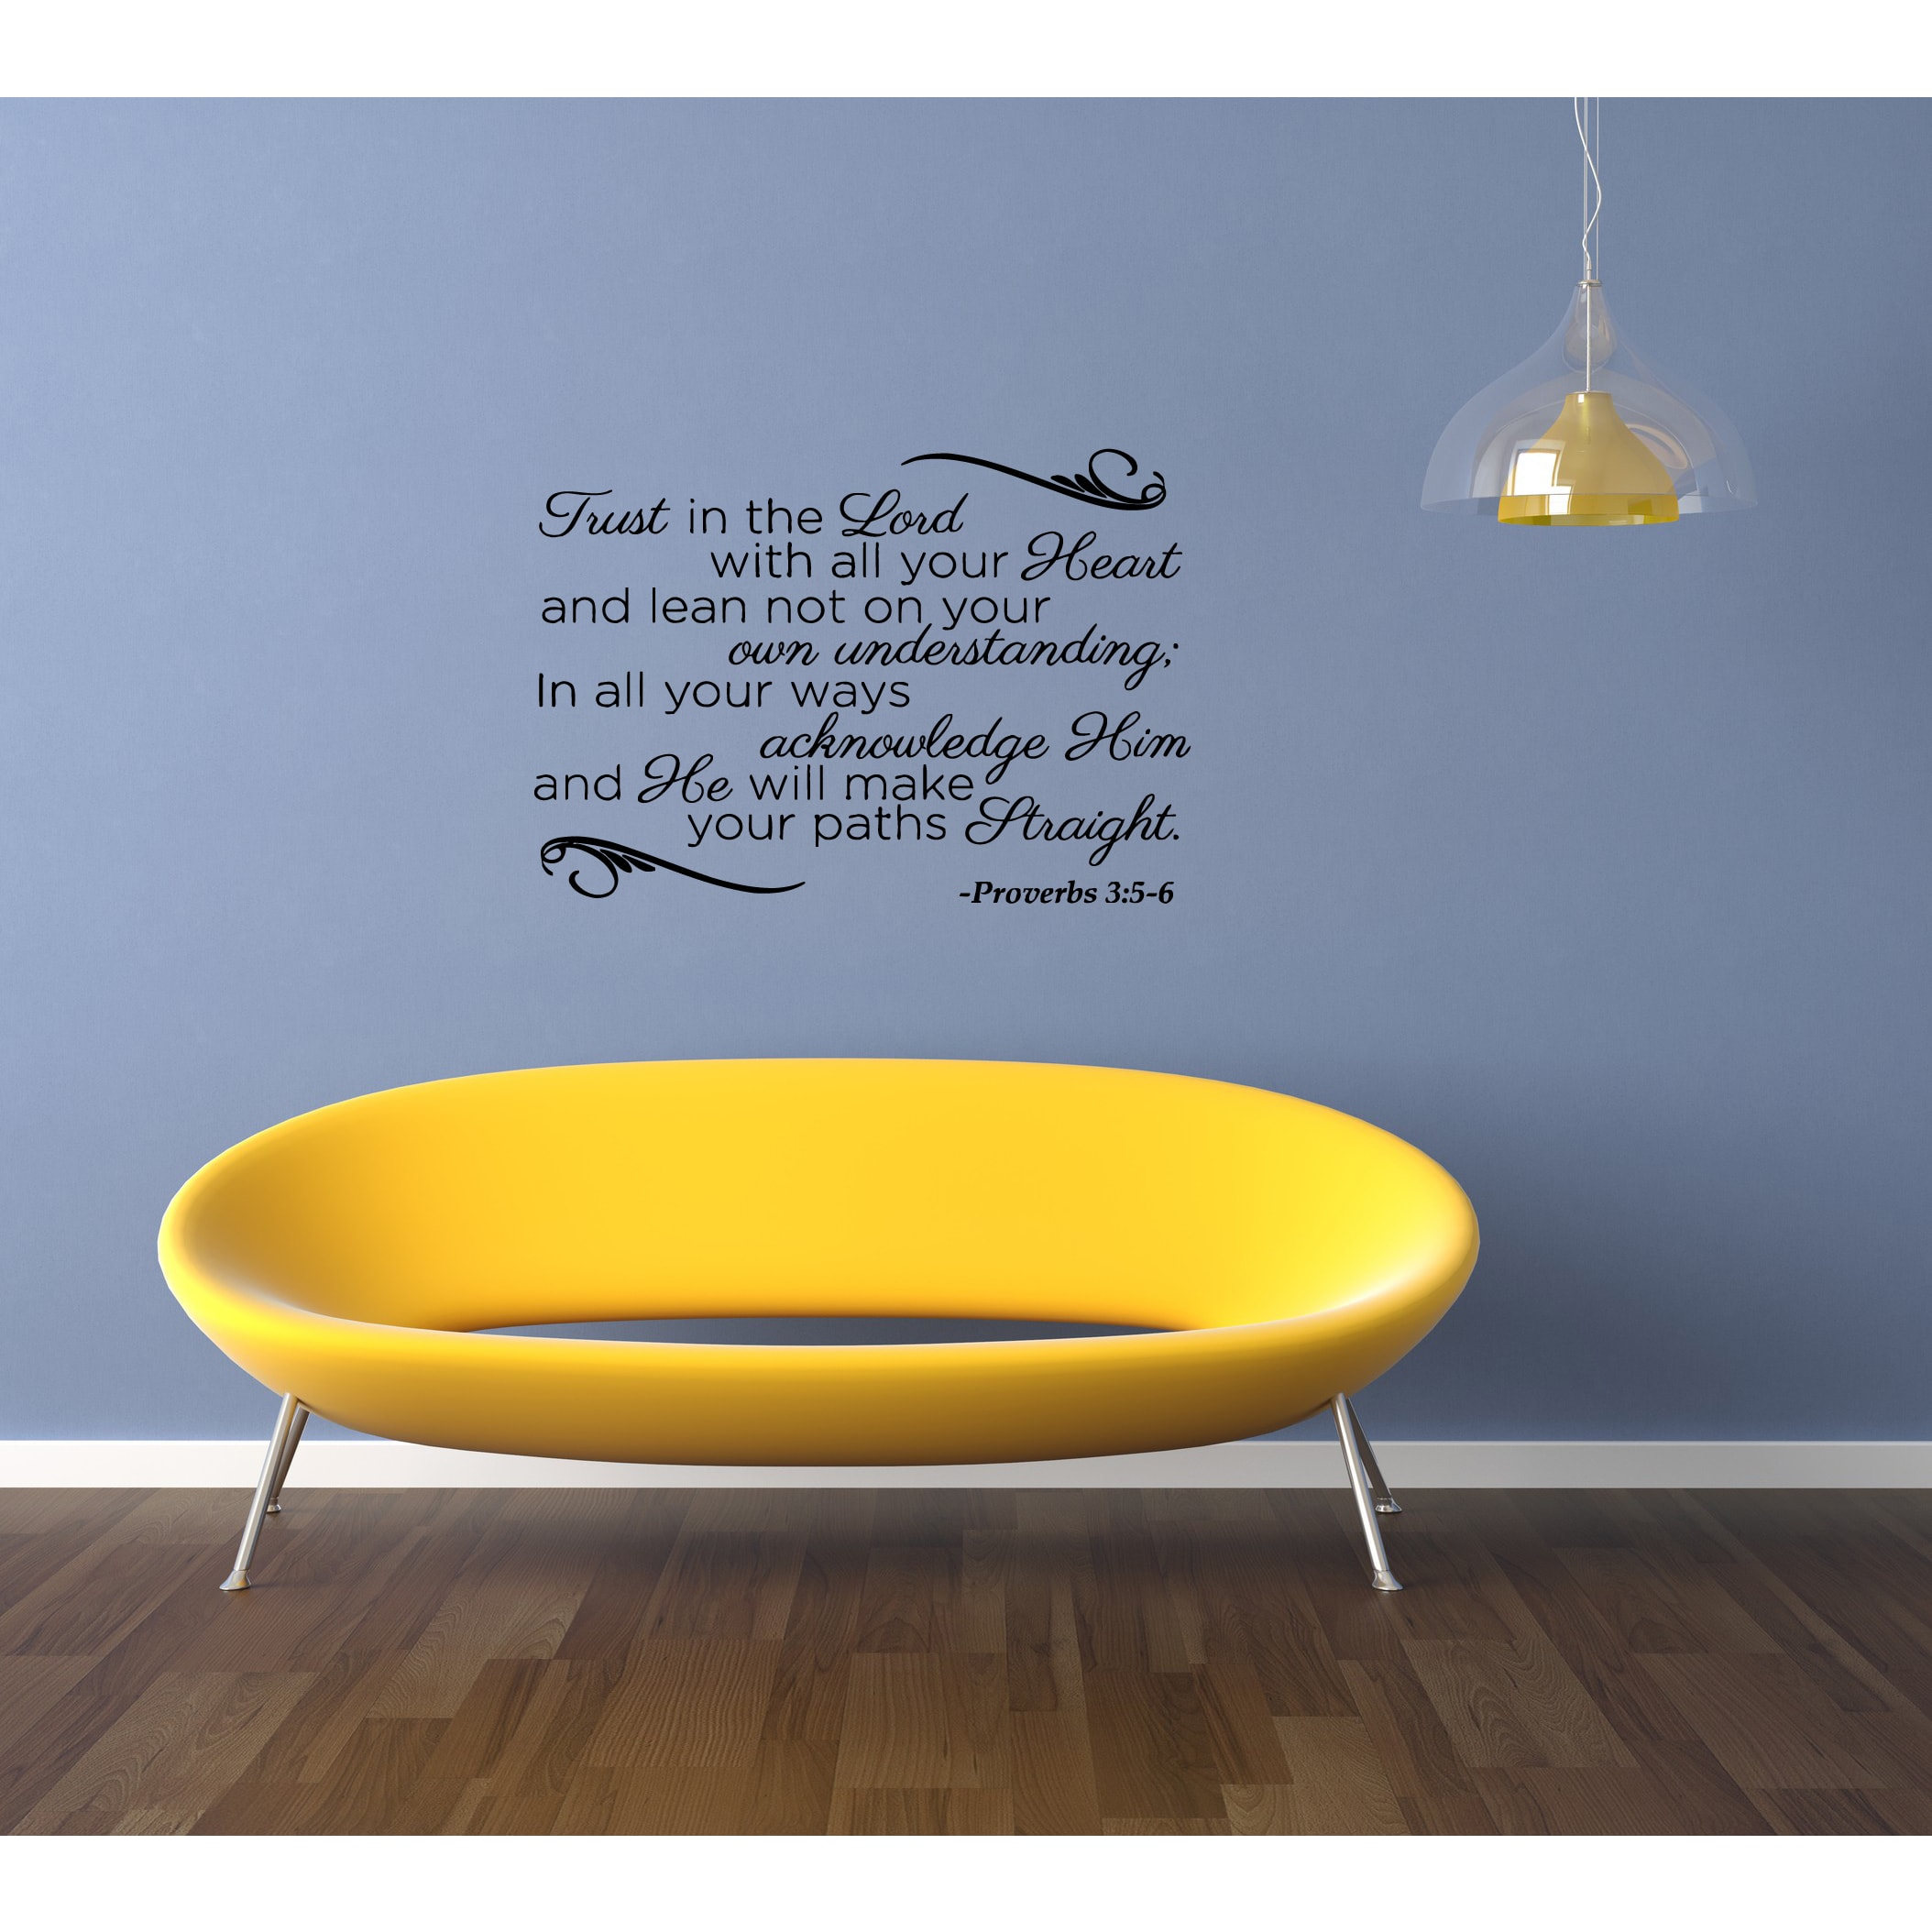 Shop Expression Trust in the Lord - Proverbs 35 Wall Art Sticker ...